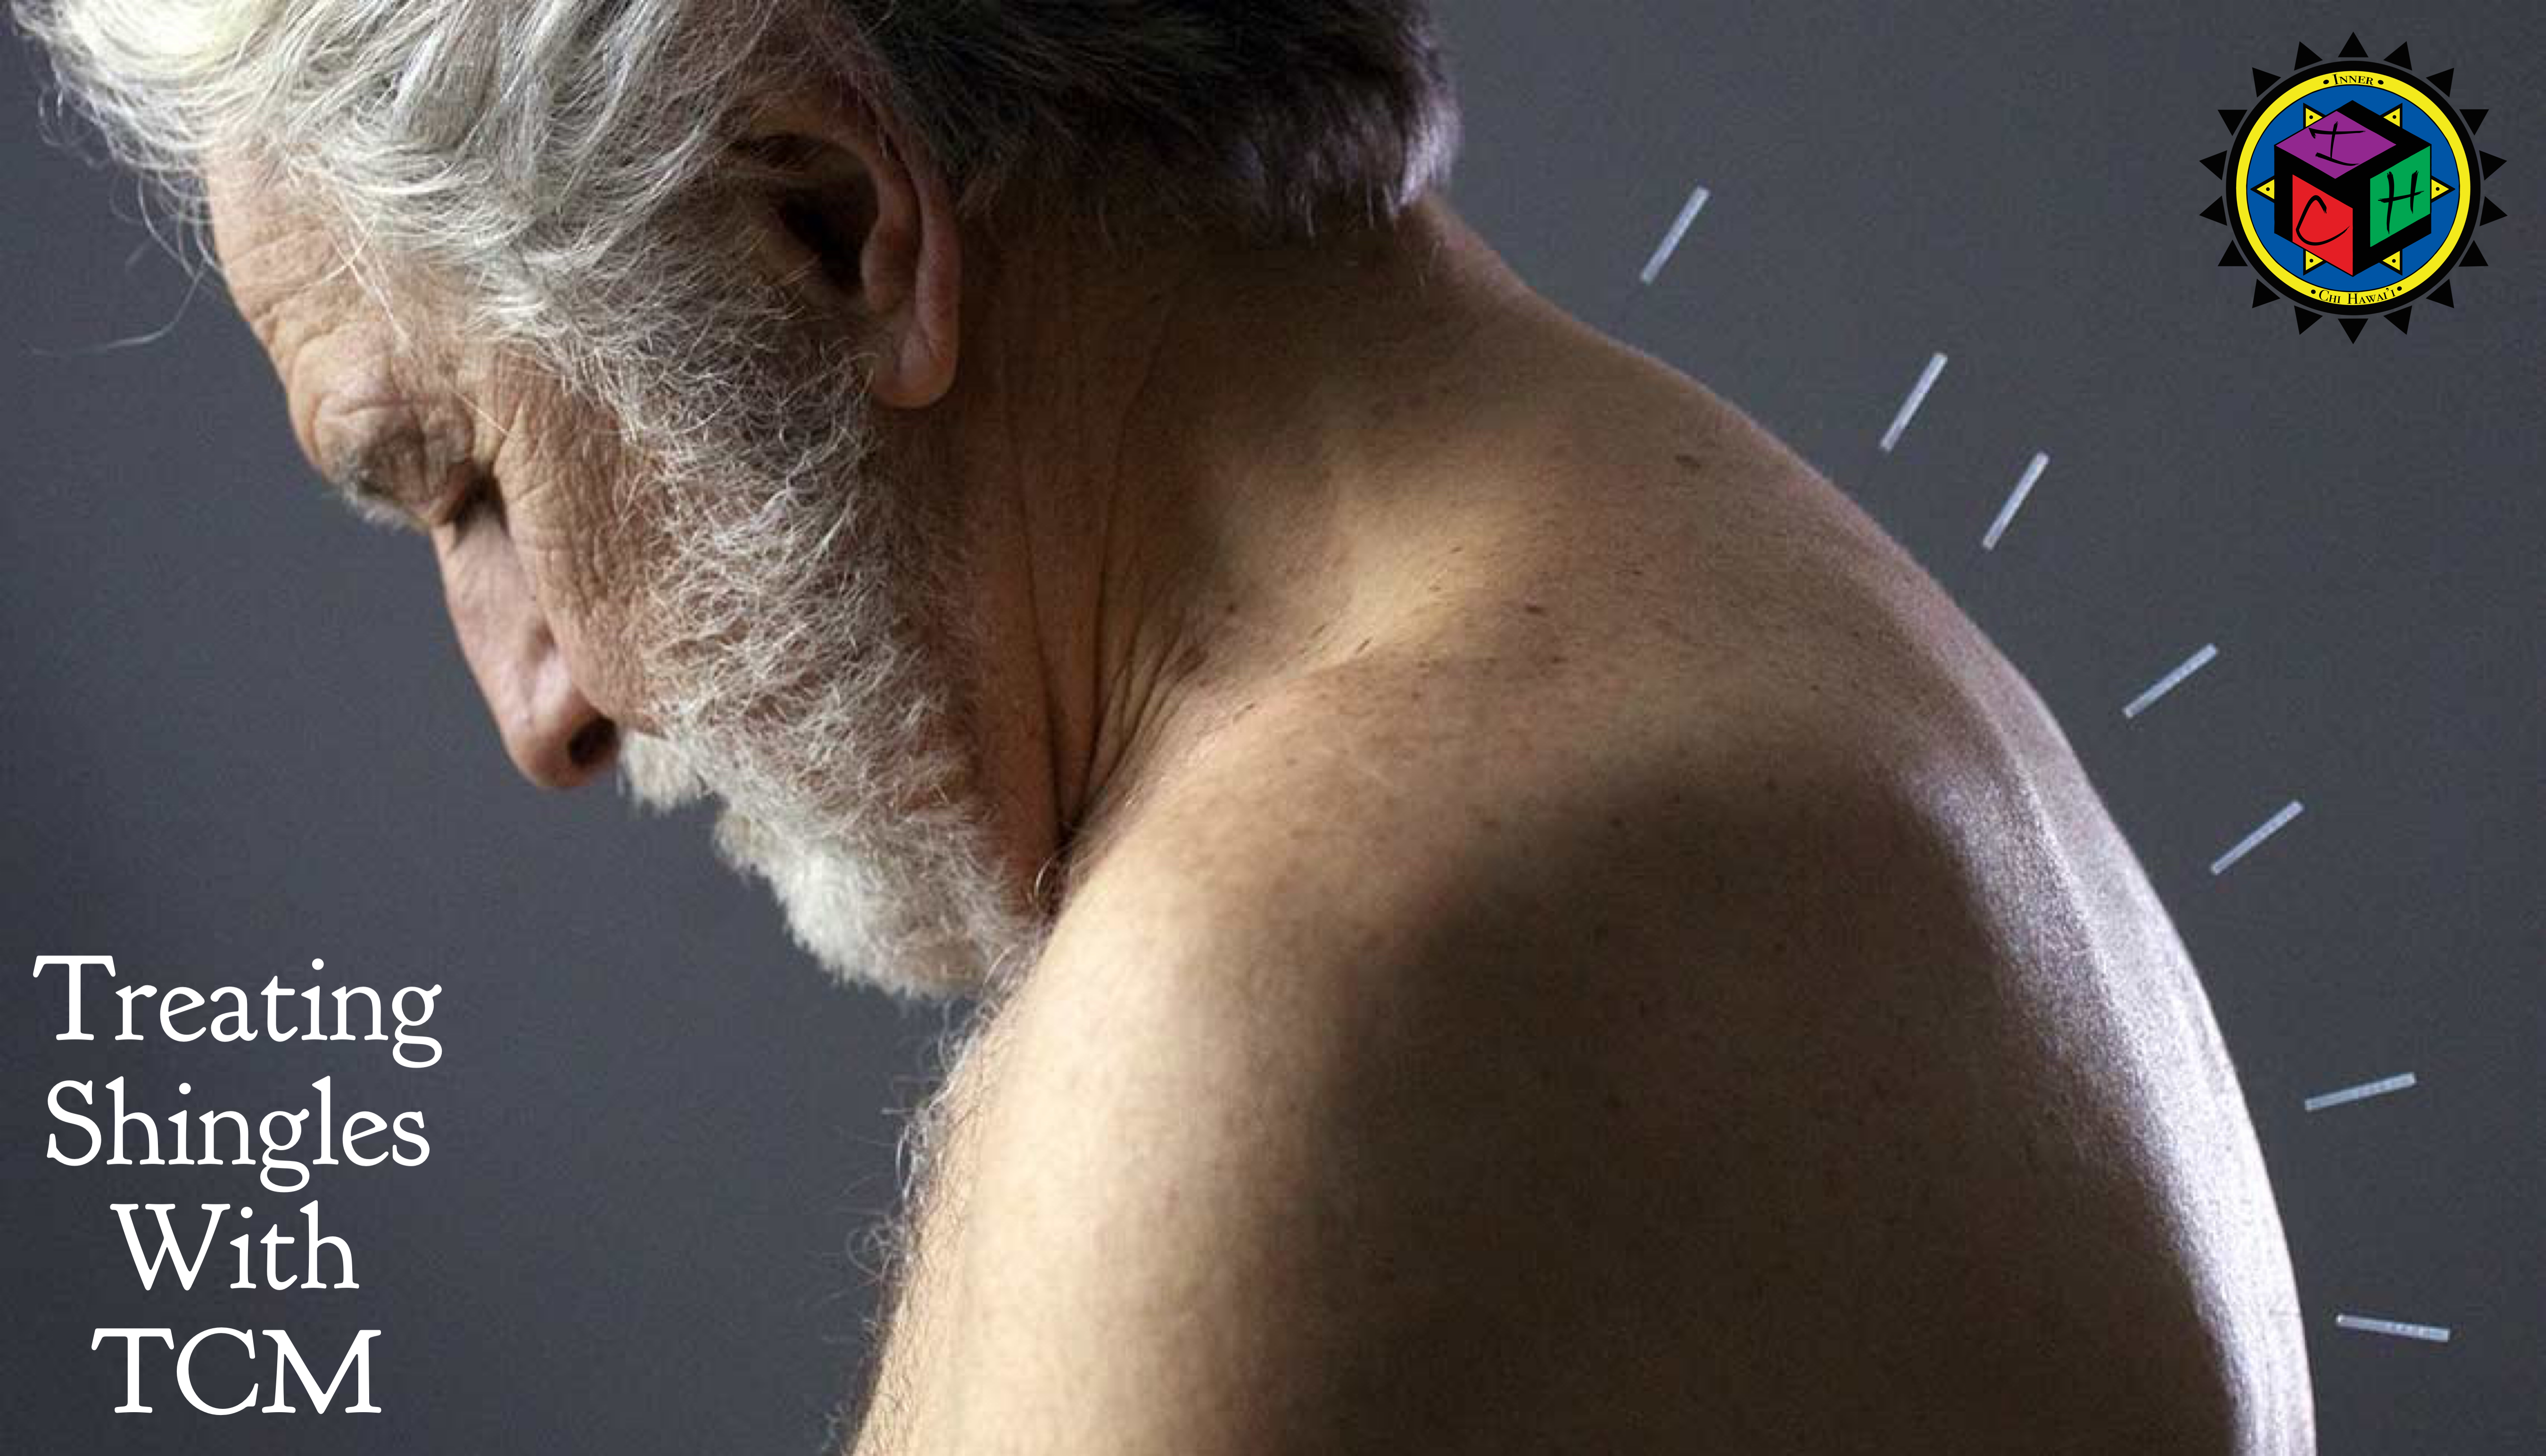 Acupuncture and Herbs Stop Shingles Pain, Outperforms Drugs